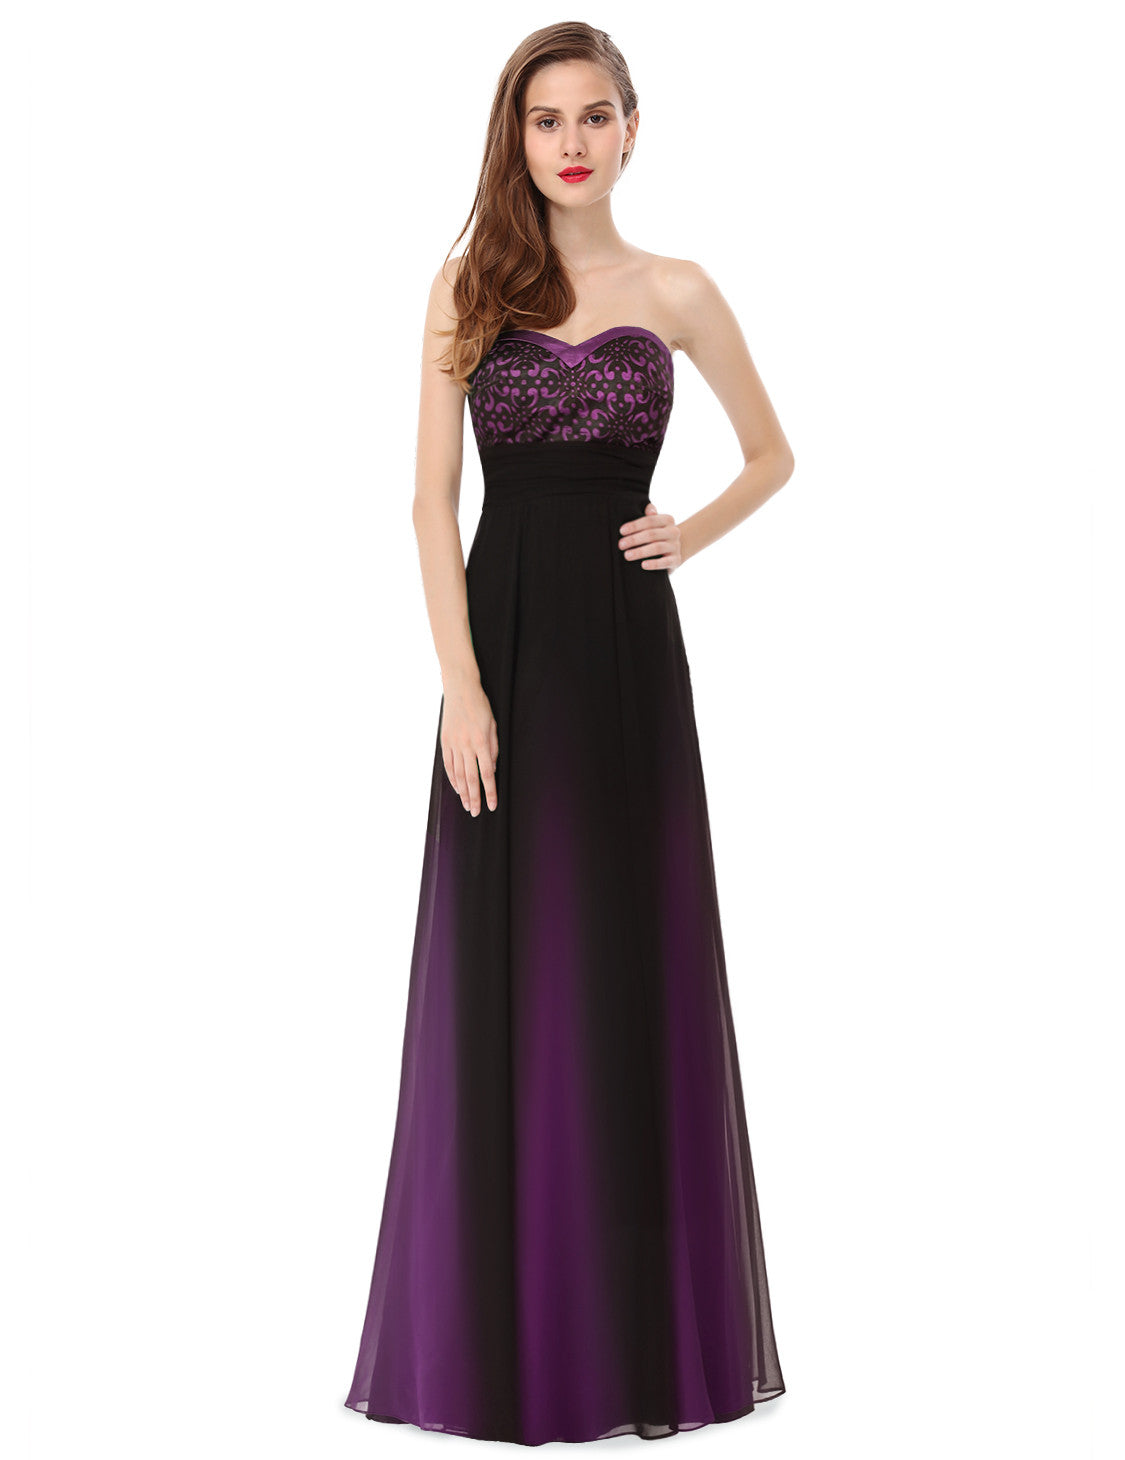 Obeige Mystical Purple Elegant Strapless Long Evening Dress